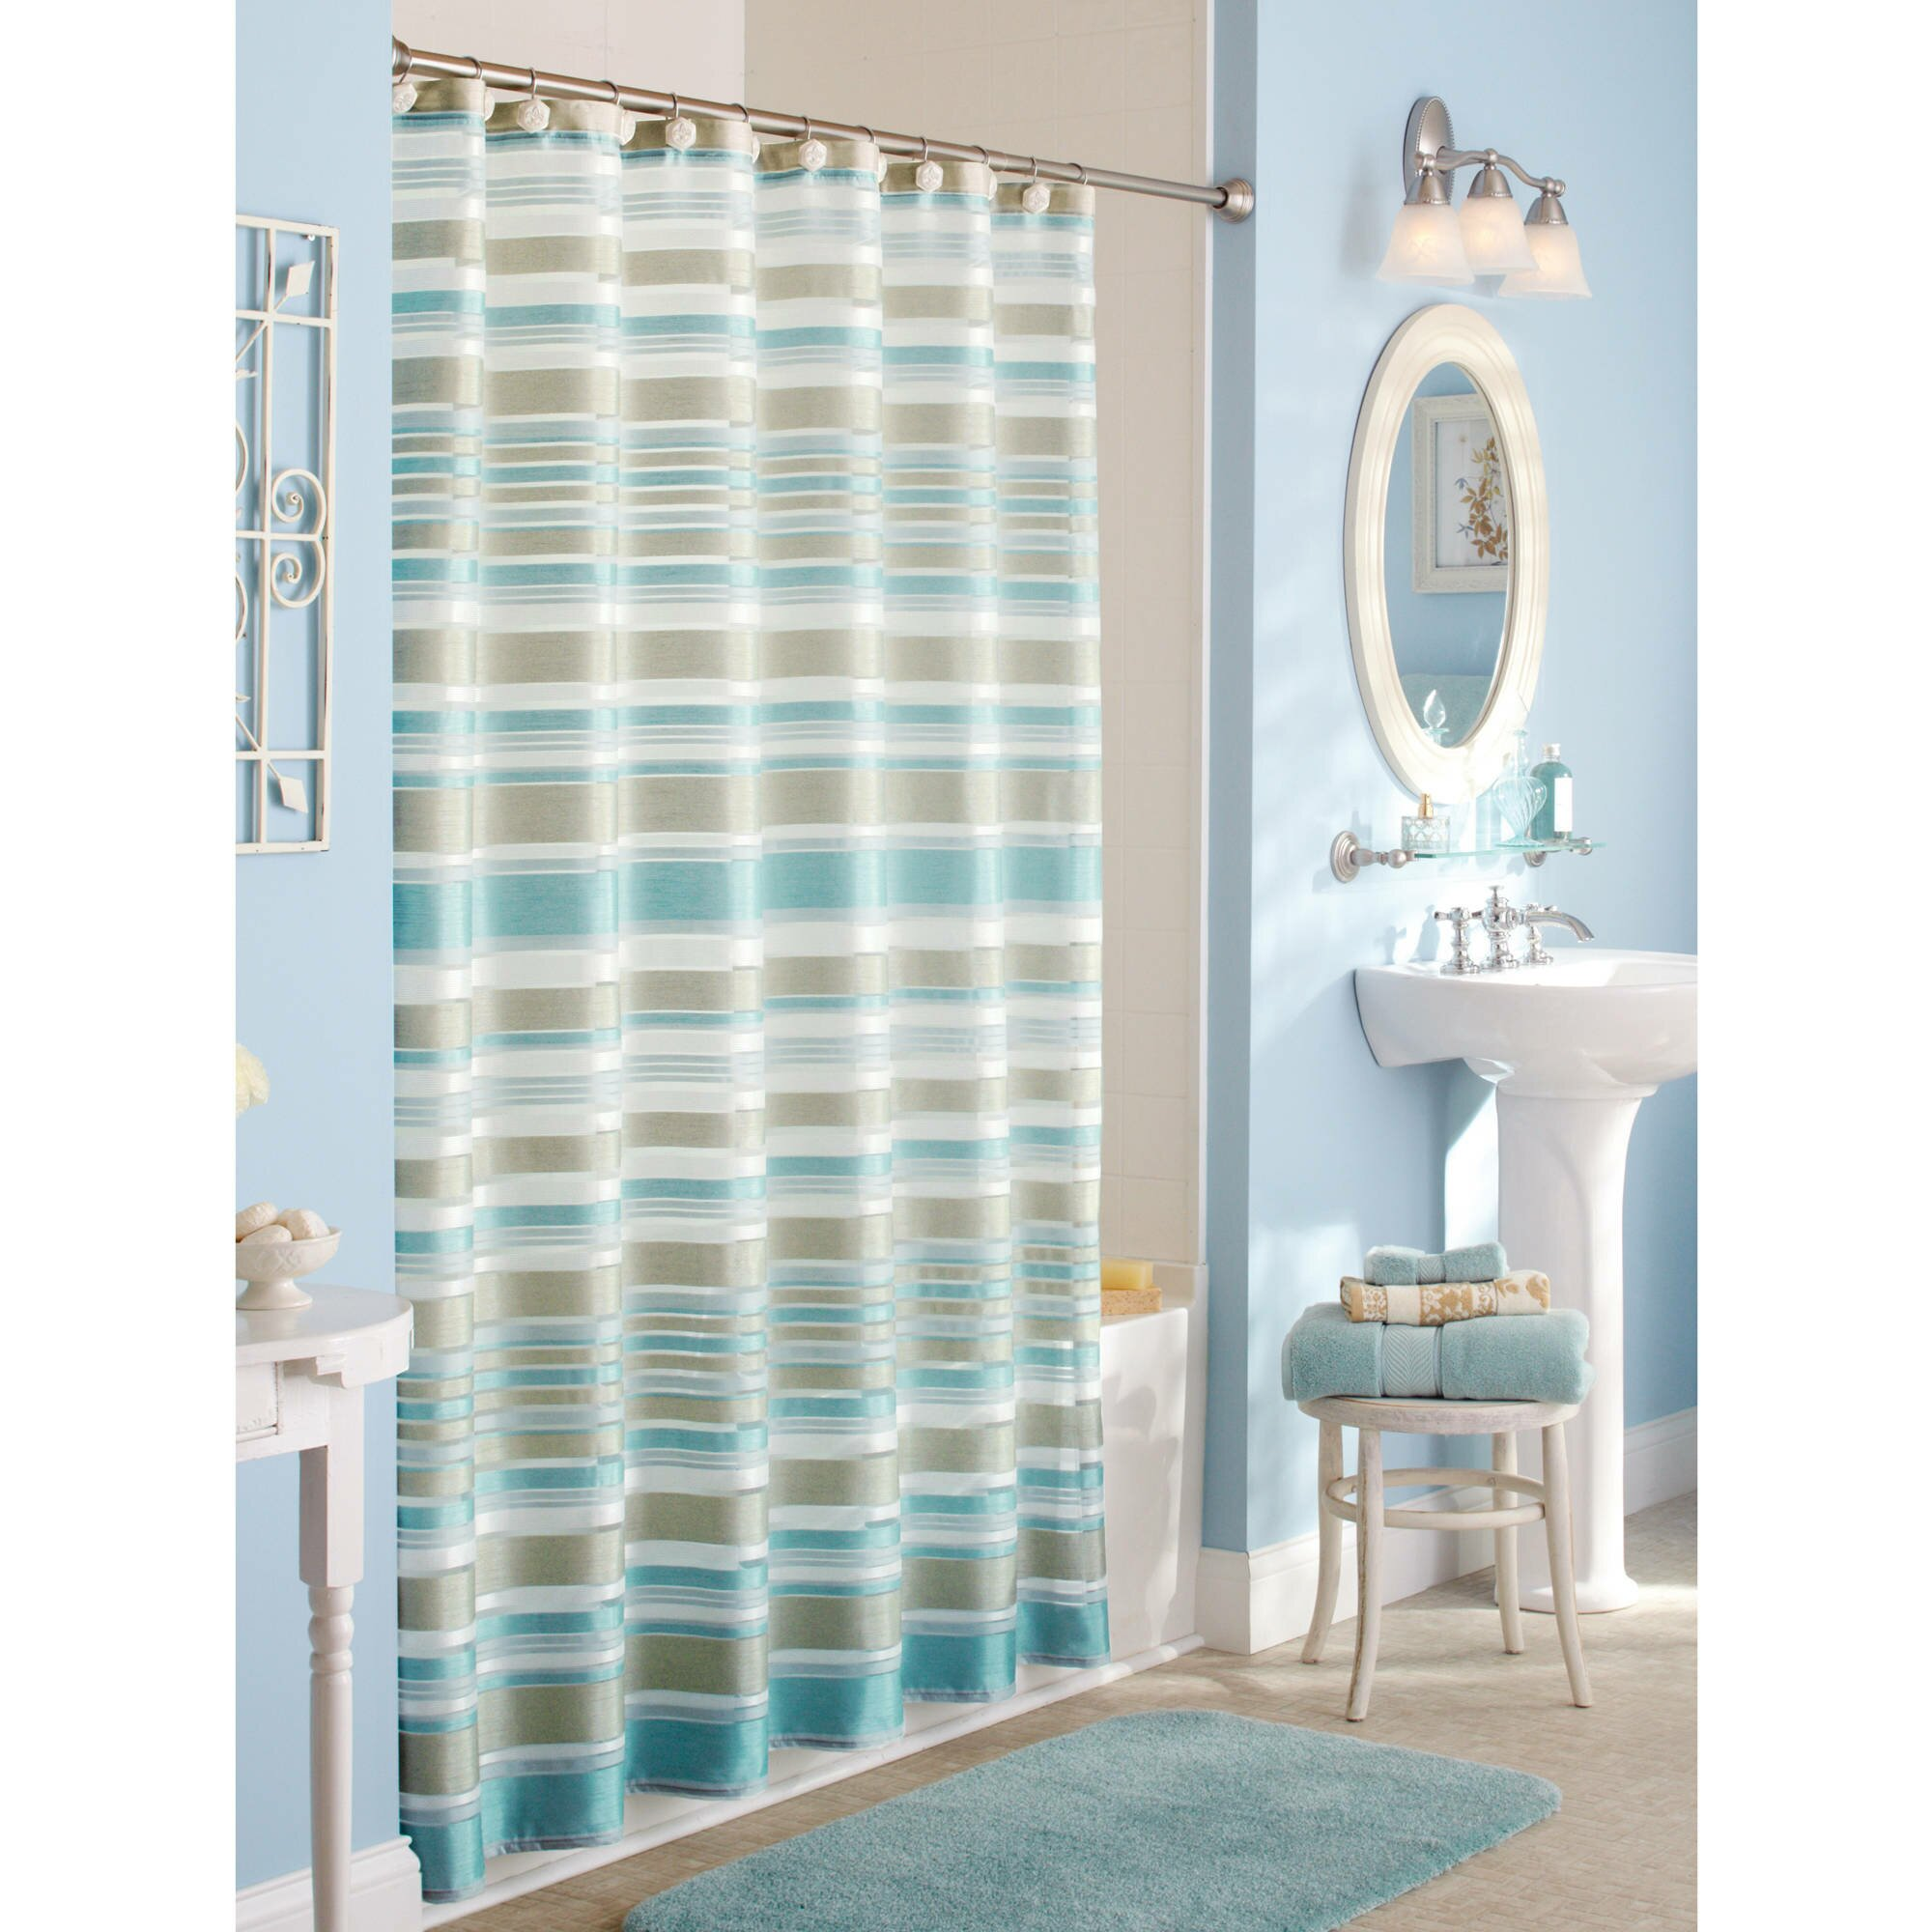 Walmart Shower Curtain for Cute Your Bathroom Decor Ideas: Wal Mart Shower Curtain | Corner Shower Curtain Rod Walmart | Walmart Shower Curtain